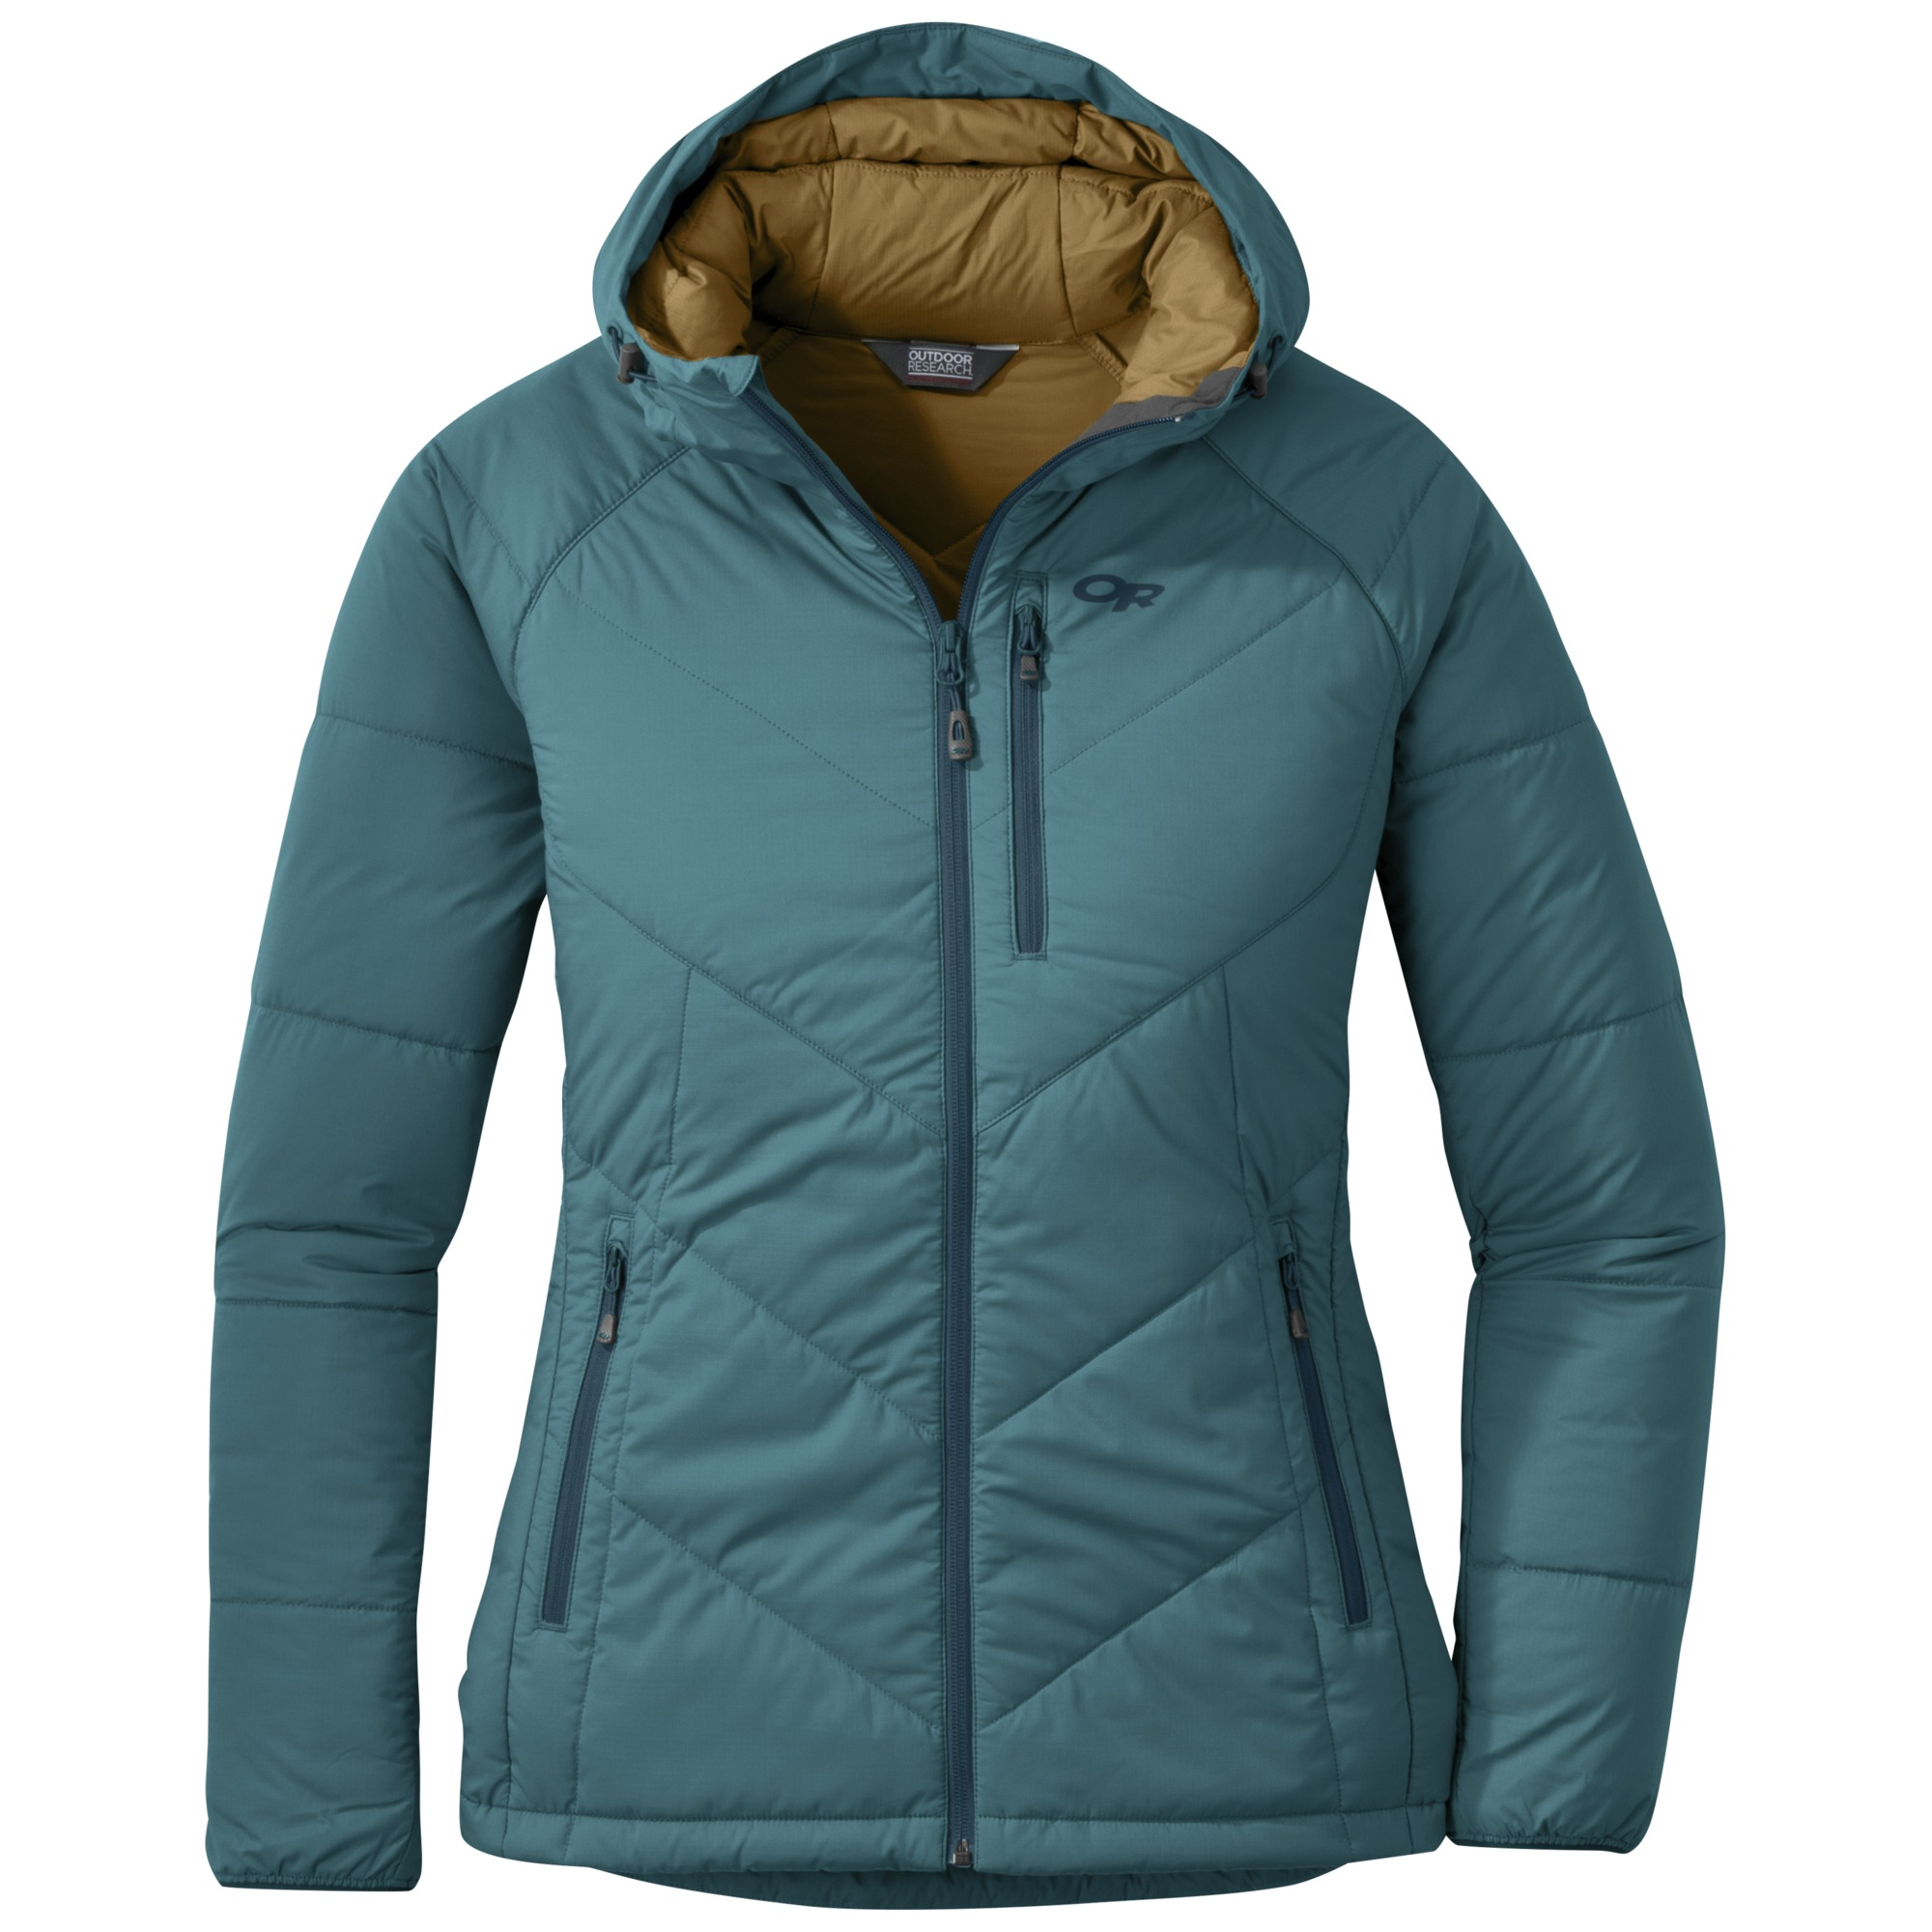 fb238e9d2f4d Women s Refuge Hooded Jacket.  268110. Hover to zoom